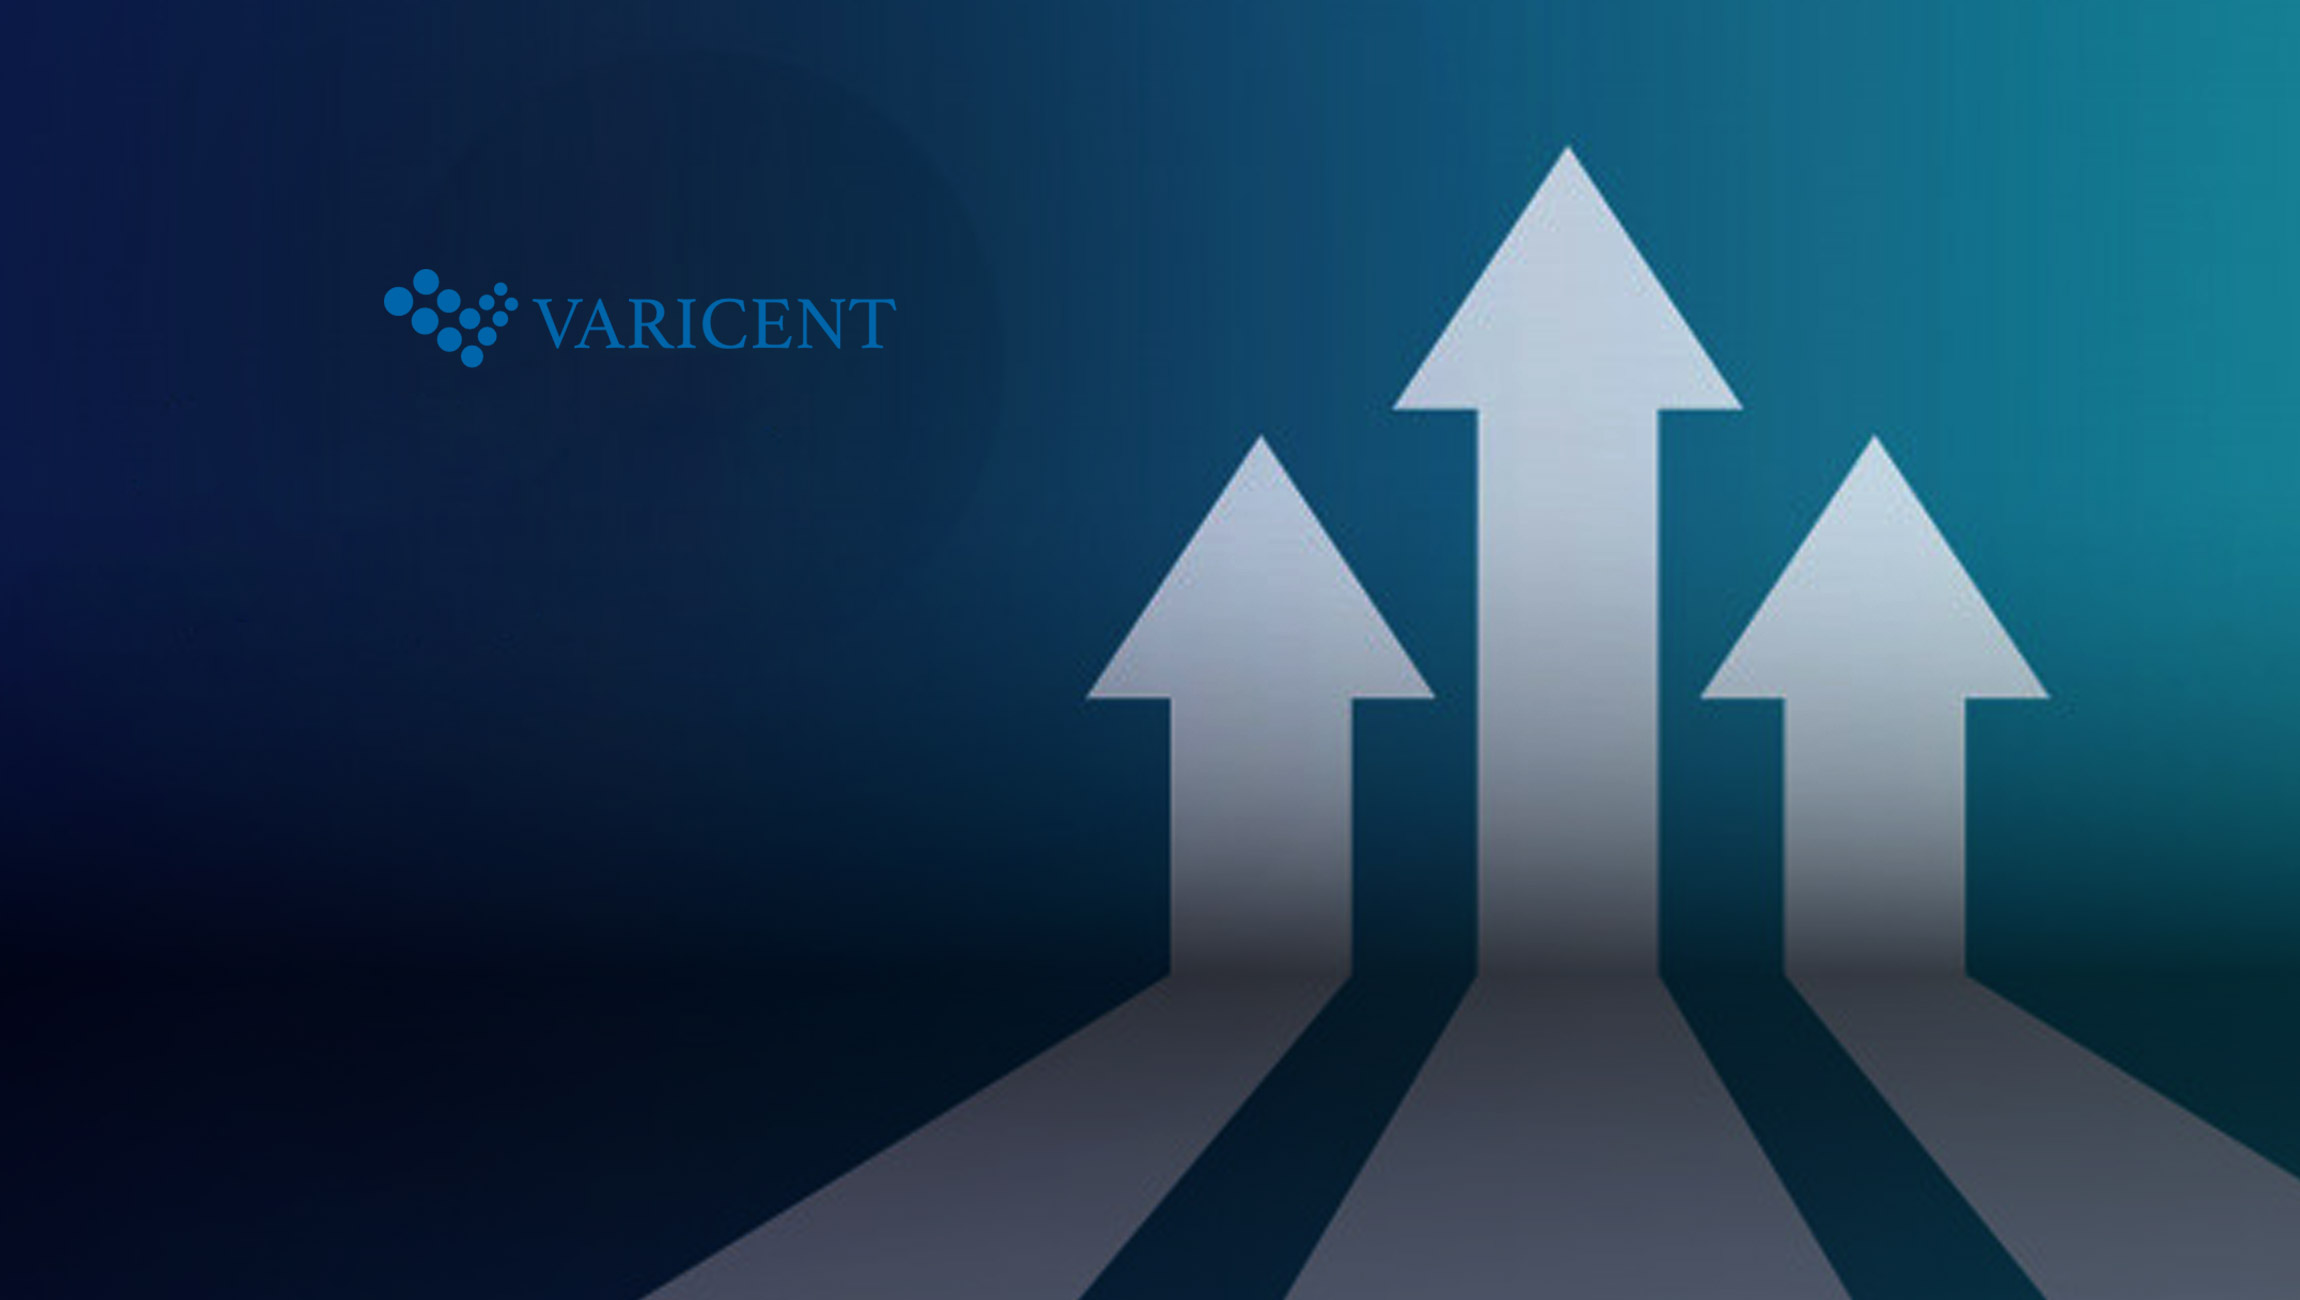 Varicent Named a Finalist For the 13th Annual Digital Innovation Awards by Ventana Research for Its Augmented Intelligence Technology